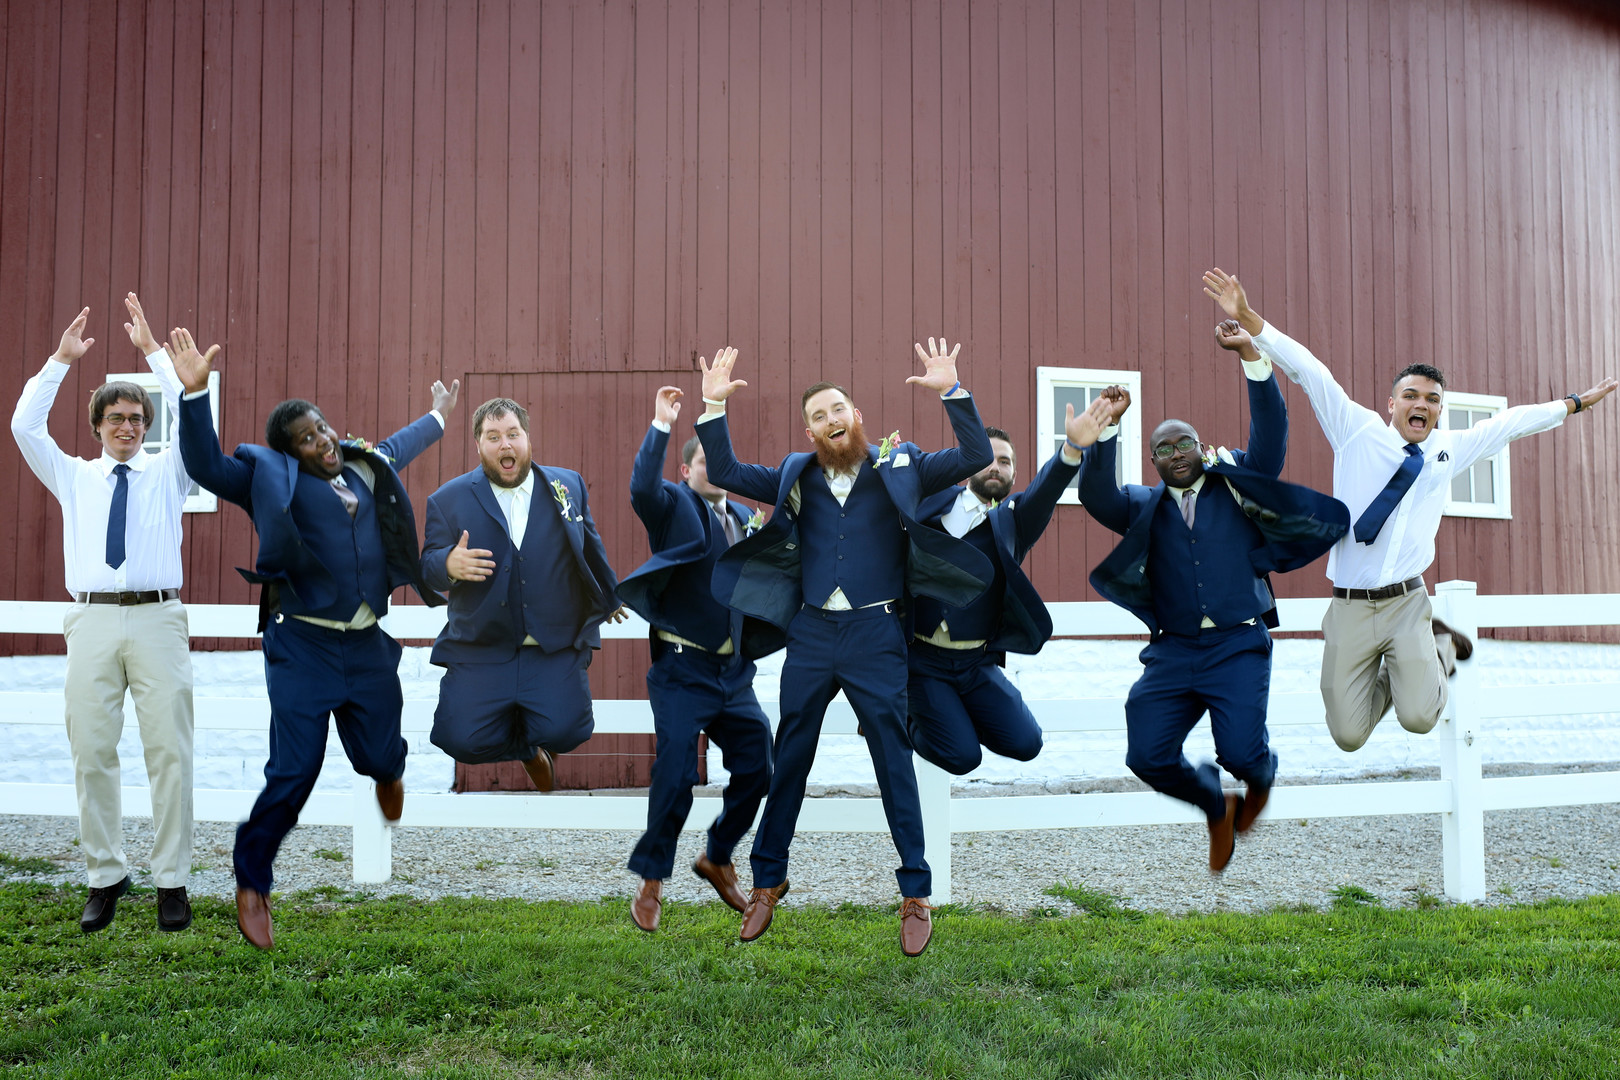 Vintage barn wedding in Silver Lake, IN captured by Messy Photography. See more barn wedding ideas at CHItheeWED.com!